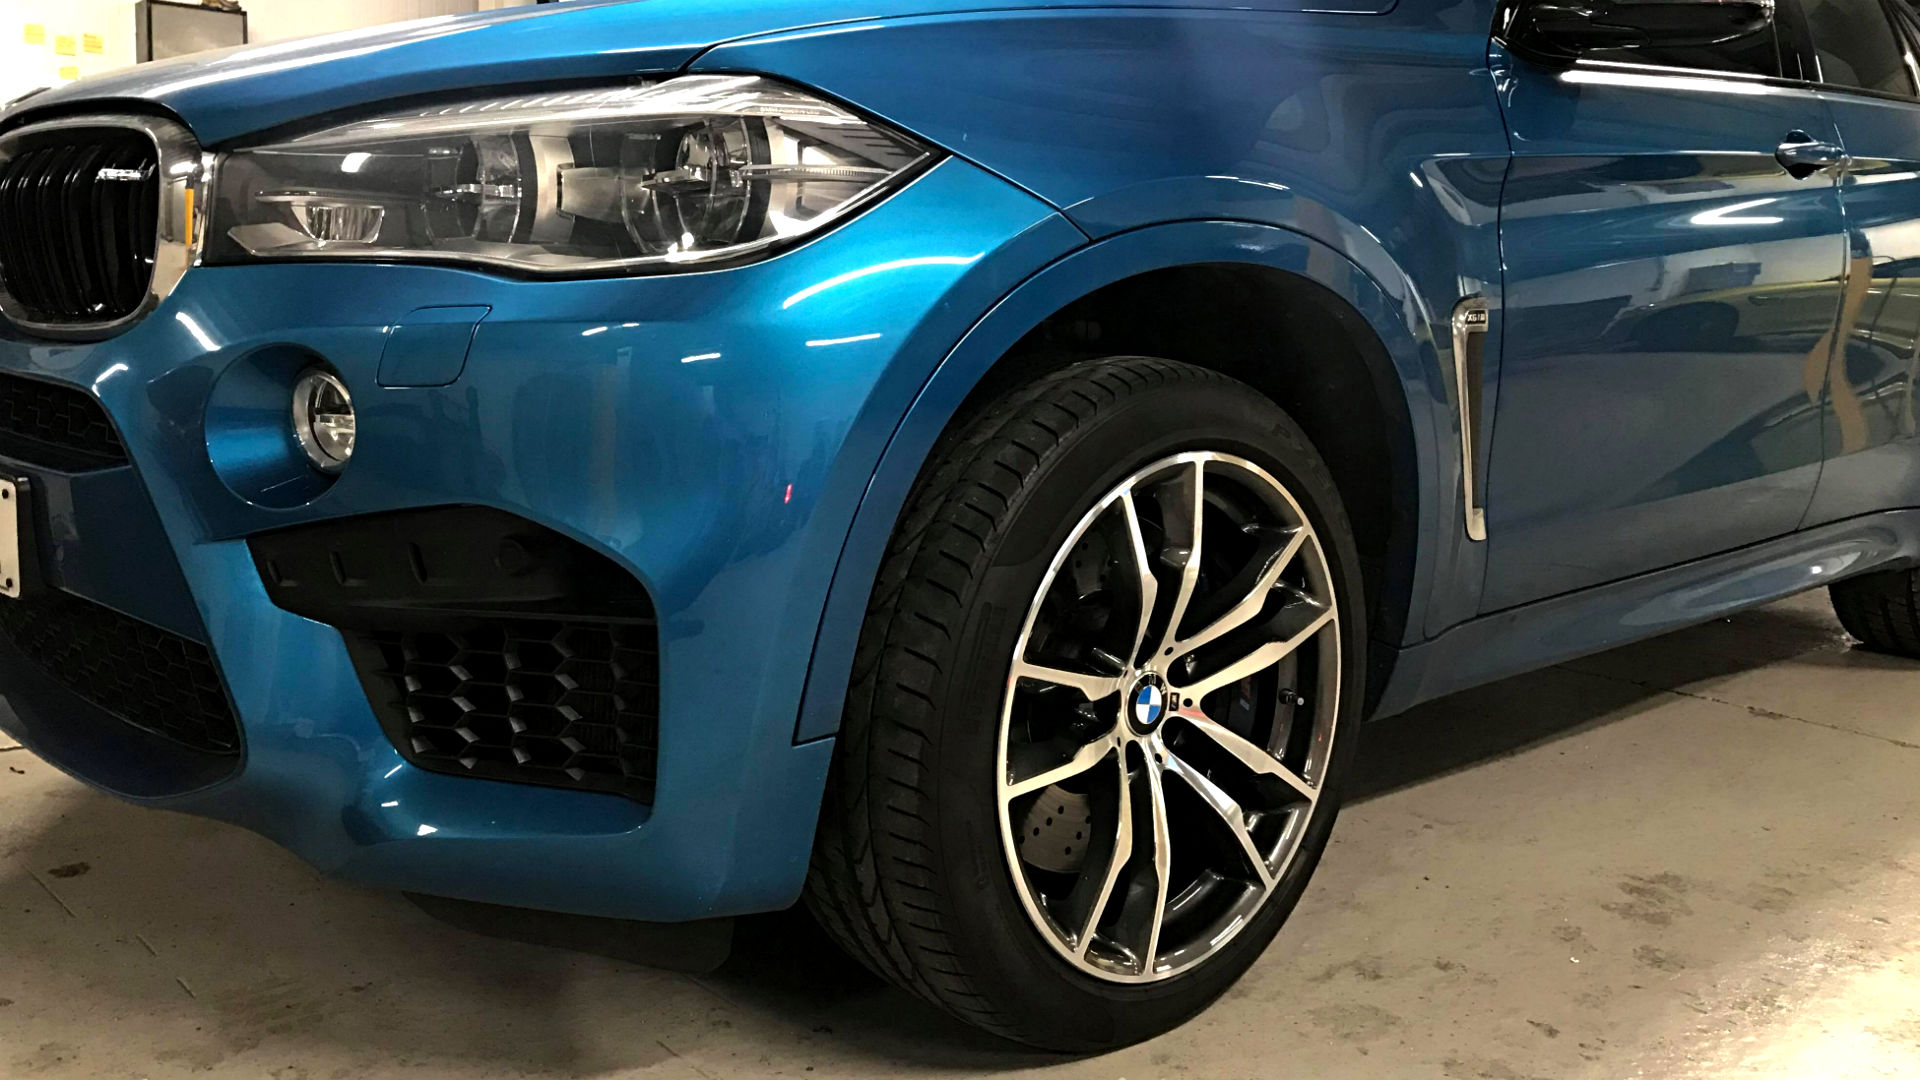 Our main goal is alloy wheels performance and quality. We have a straightening machine to get your wheels to factory specifications.